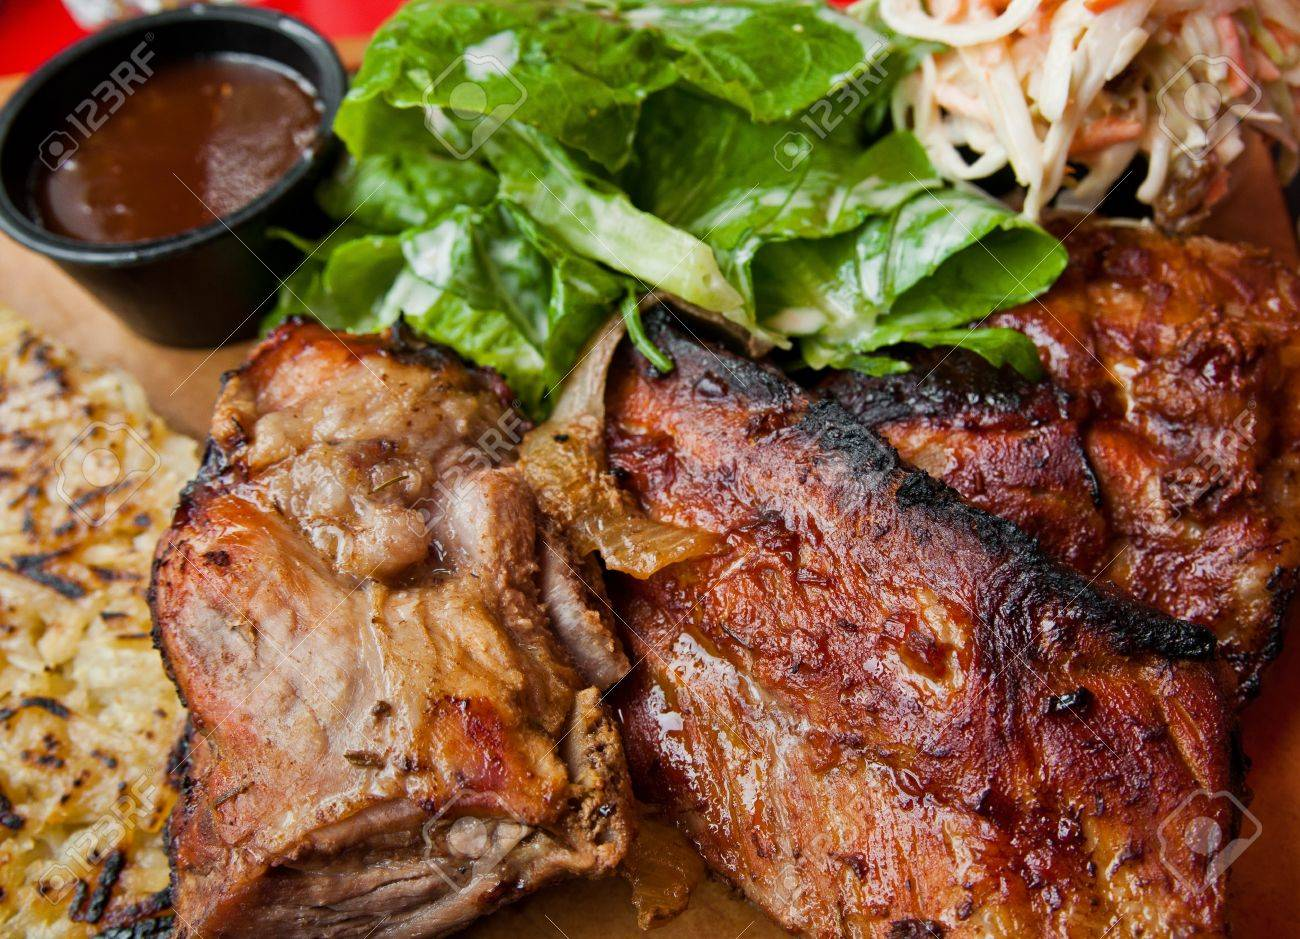 Grilled steak - Grilled meat ribs on the plate with hot sauce Stock Photo - 10790457